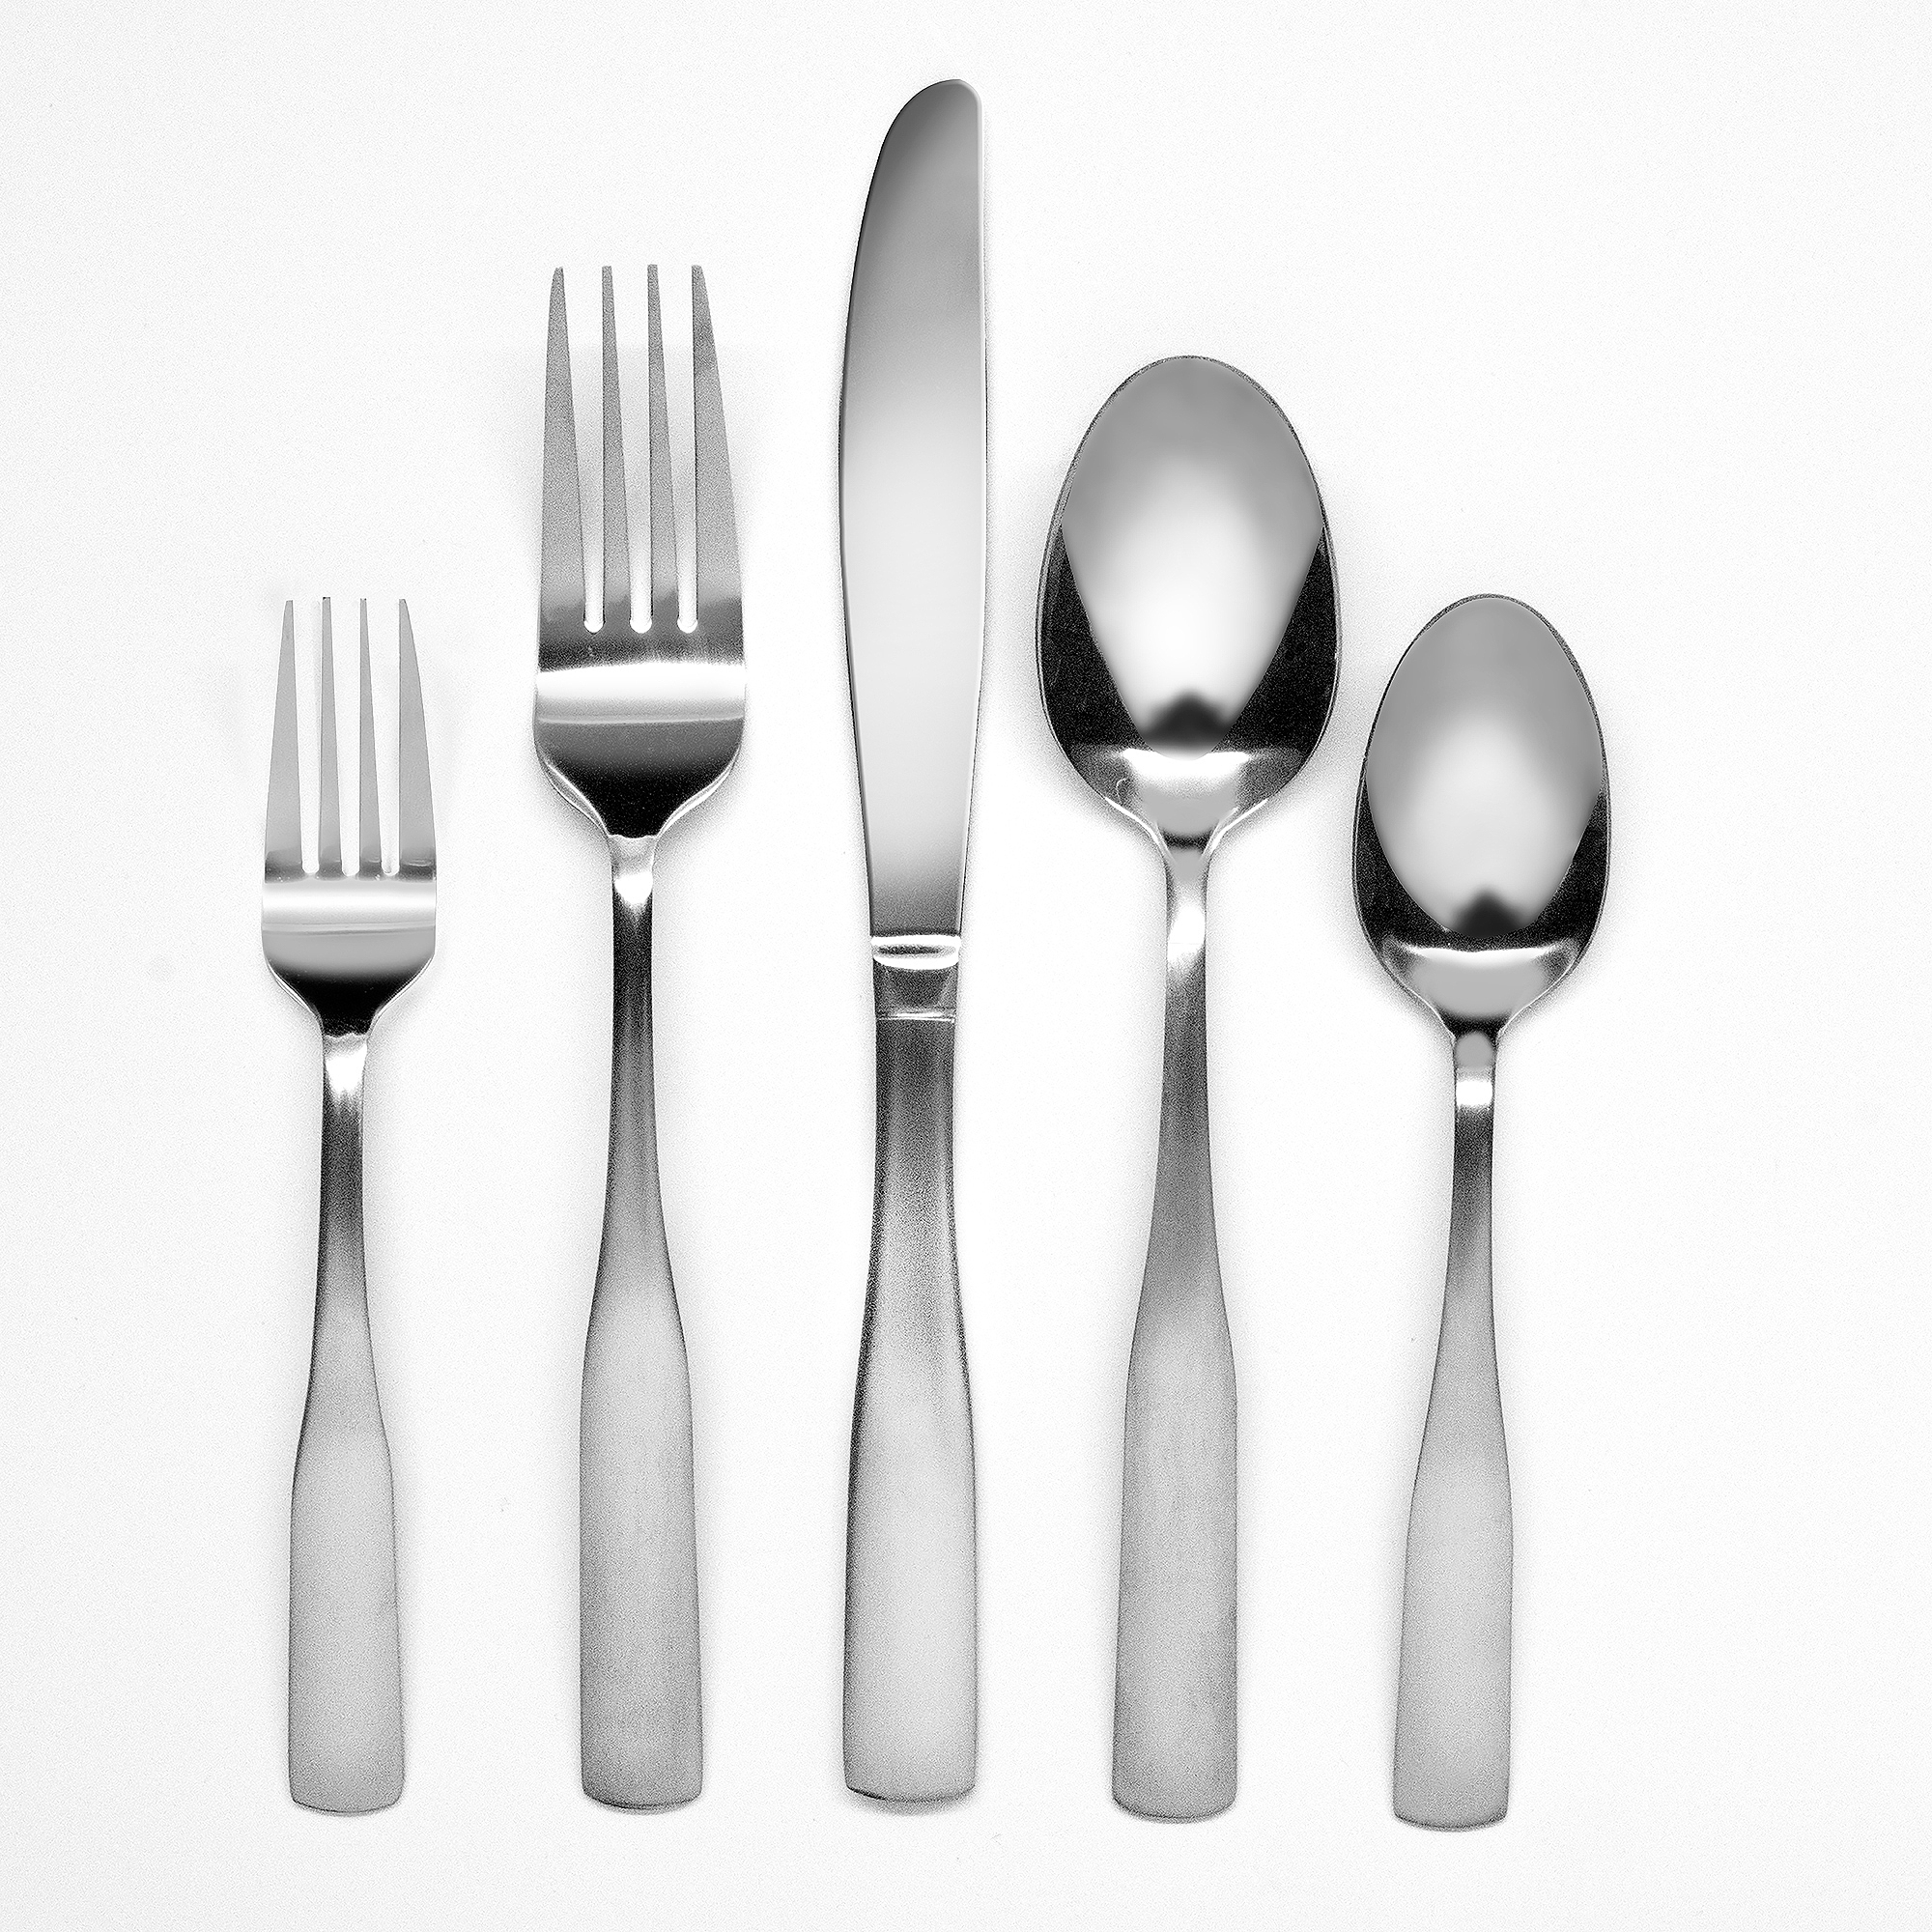 Hampton Forge Bristol Satin 20-Piece Flatware Set